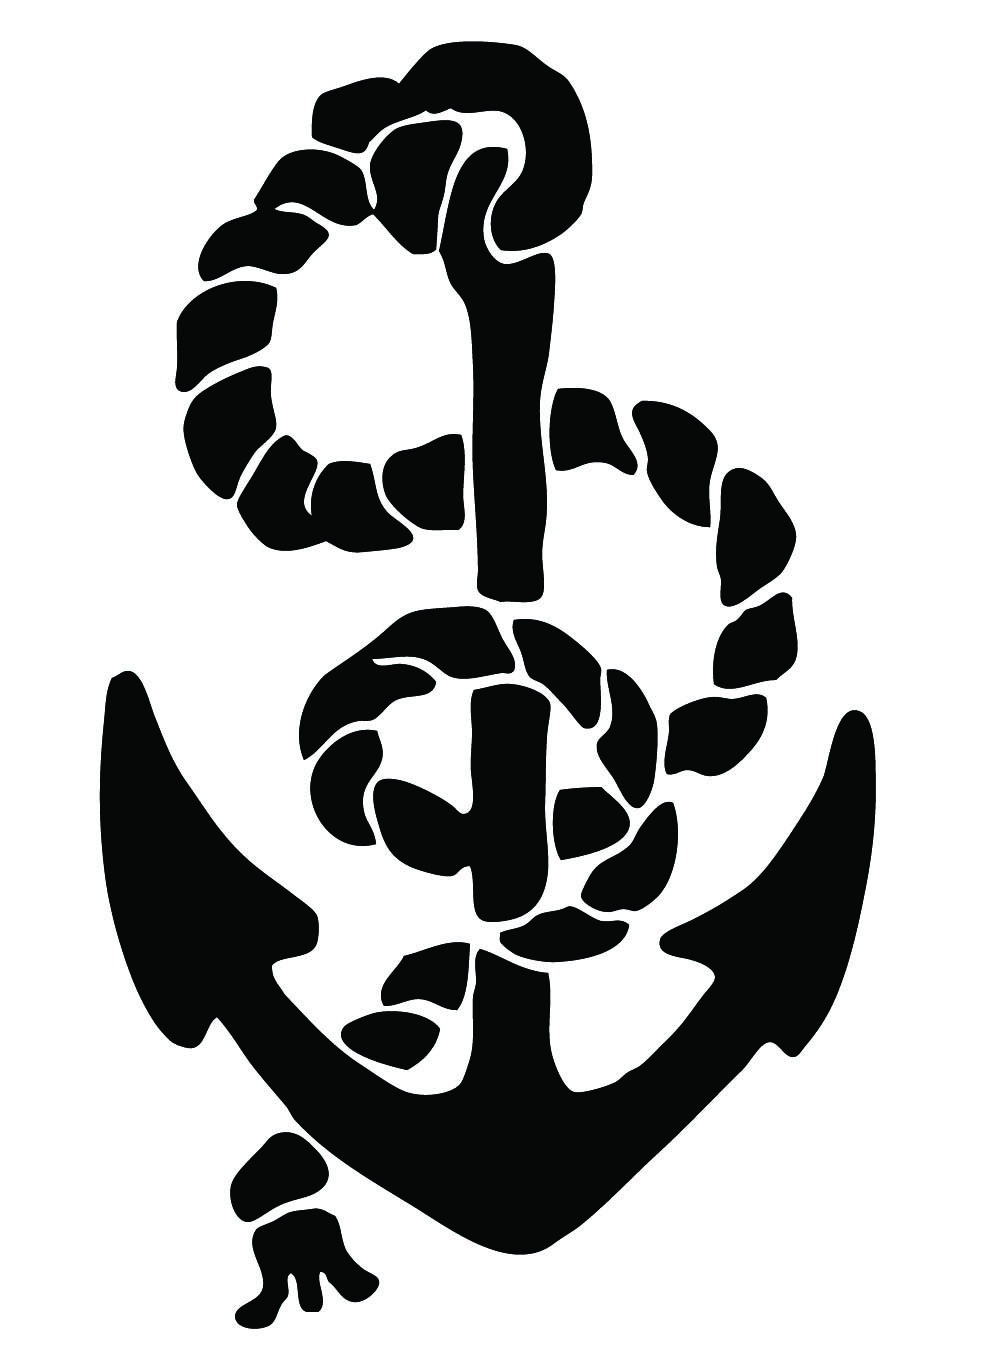 Anchor clipart black and white. Nautical letters vintage clip